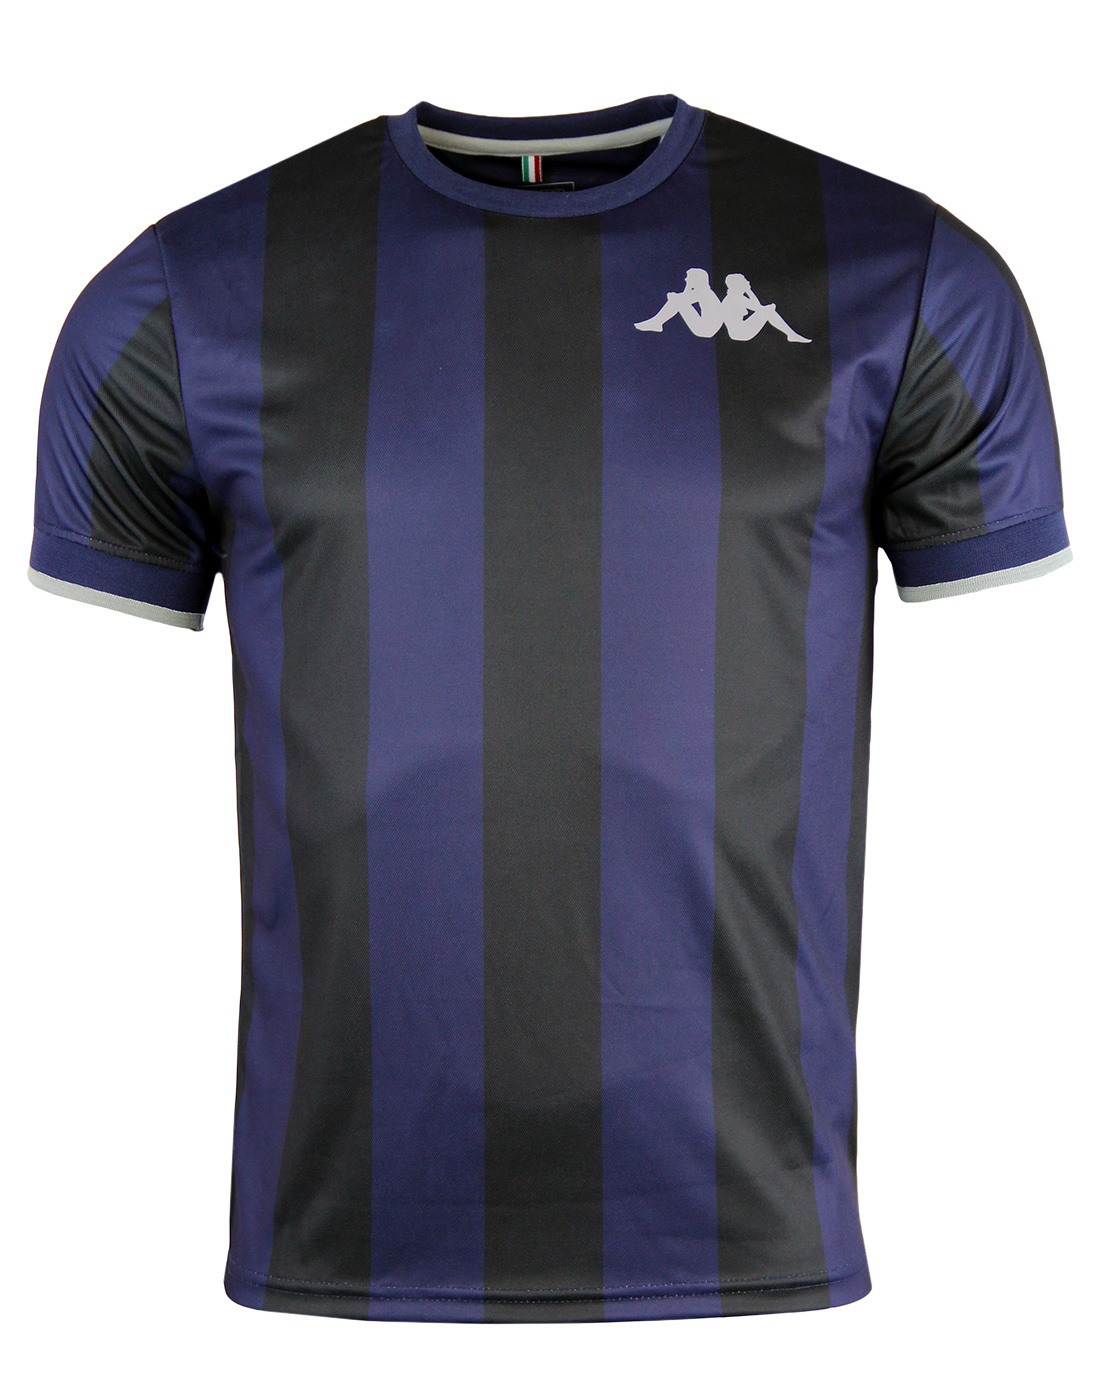 8a8a25ea2 Retro 80s Football Shirts – EDGE Engineering and Consulting Limited